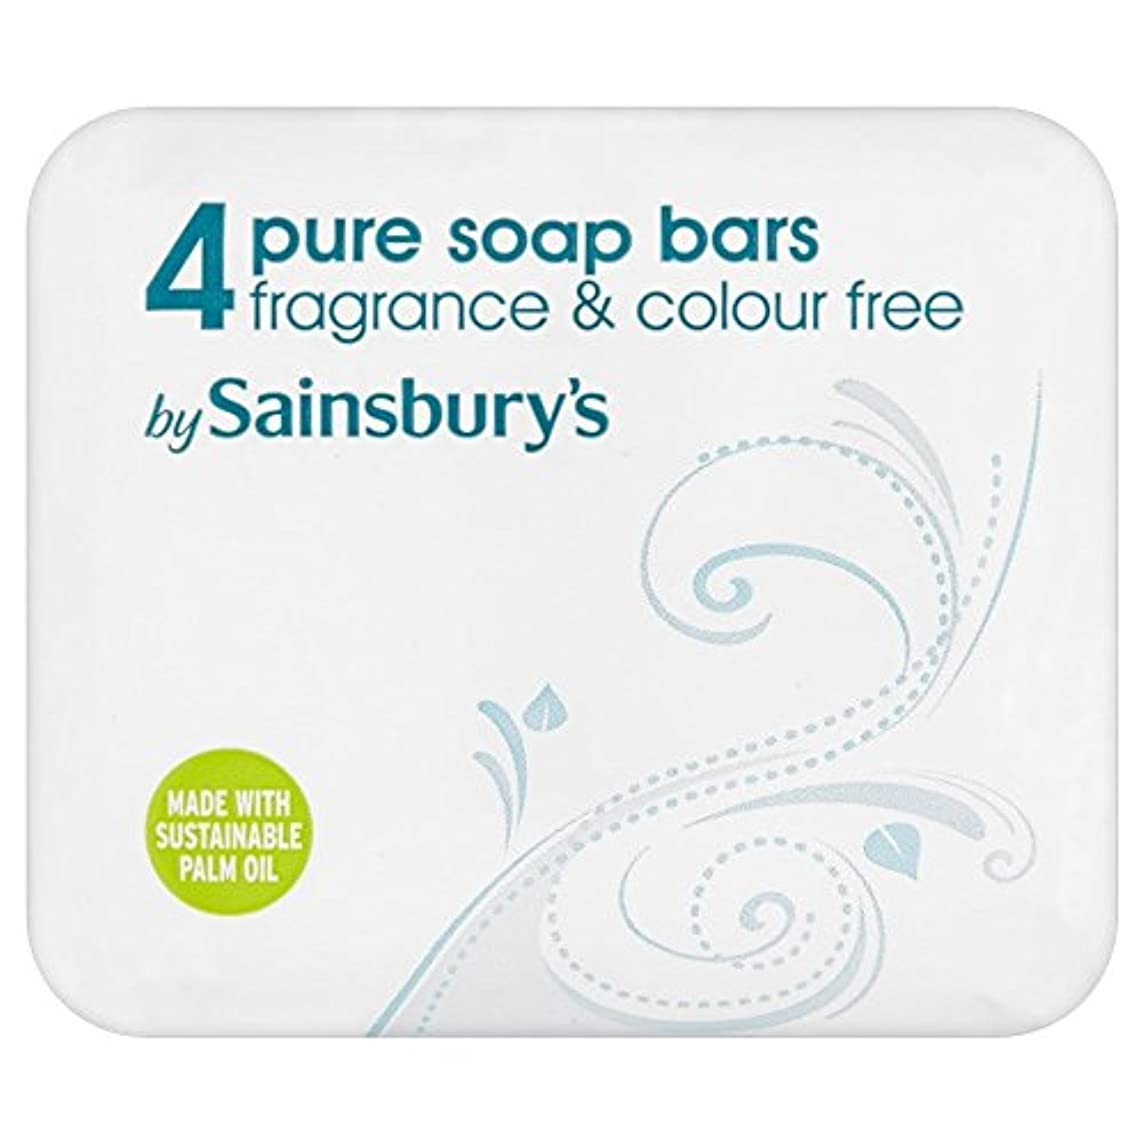 Sainsbury's Pure Soap 4x125g (Pack of 2) - (Sainsbury's) 純粋な石鹸4X125G (x2) [並行輸入品]